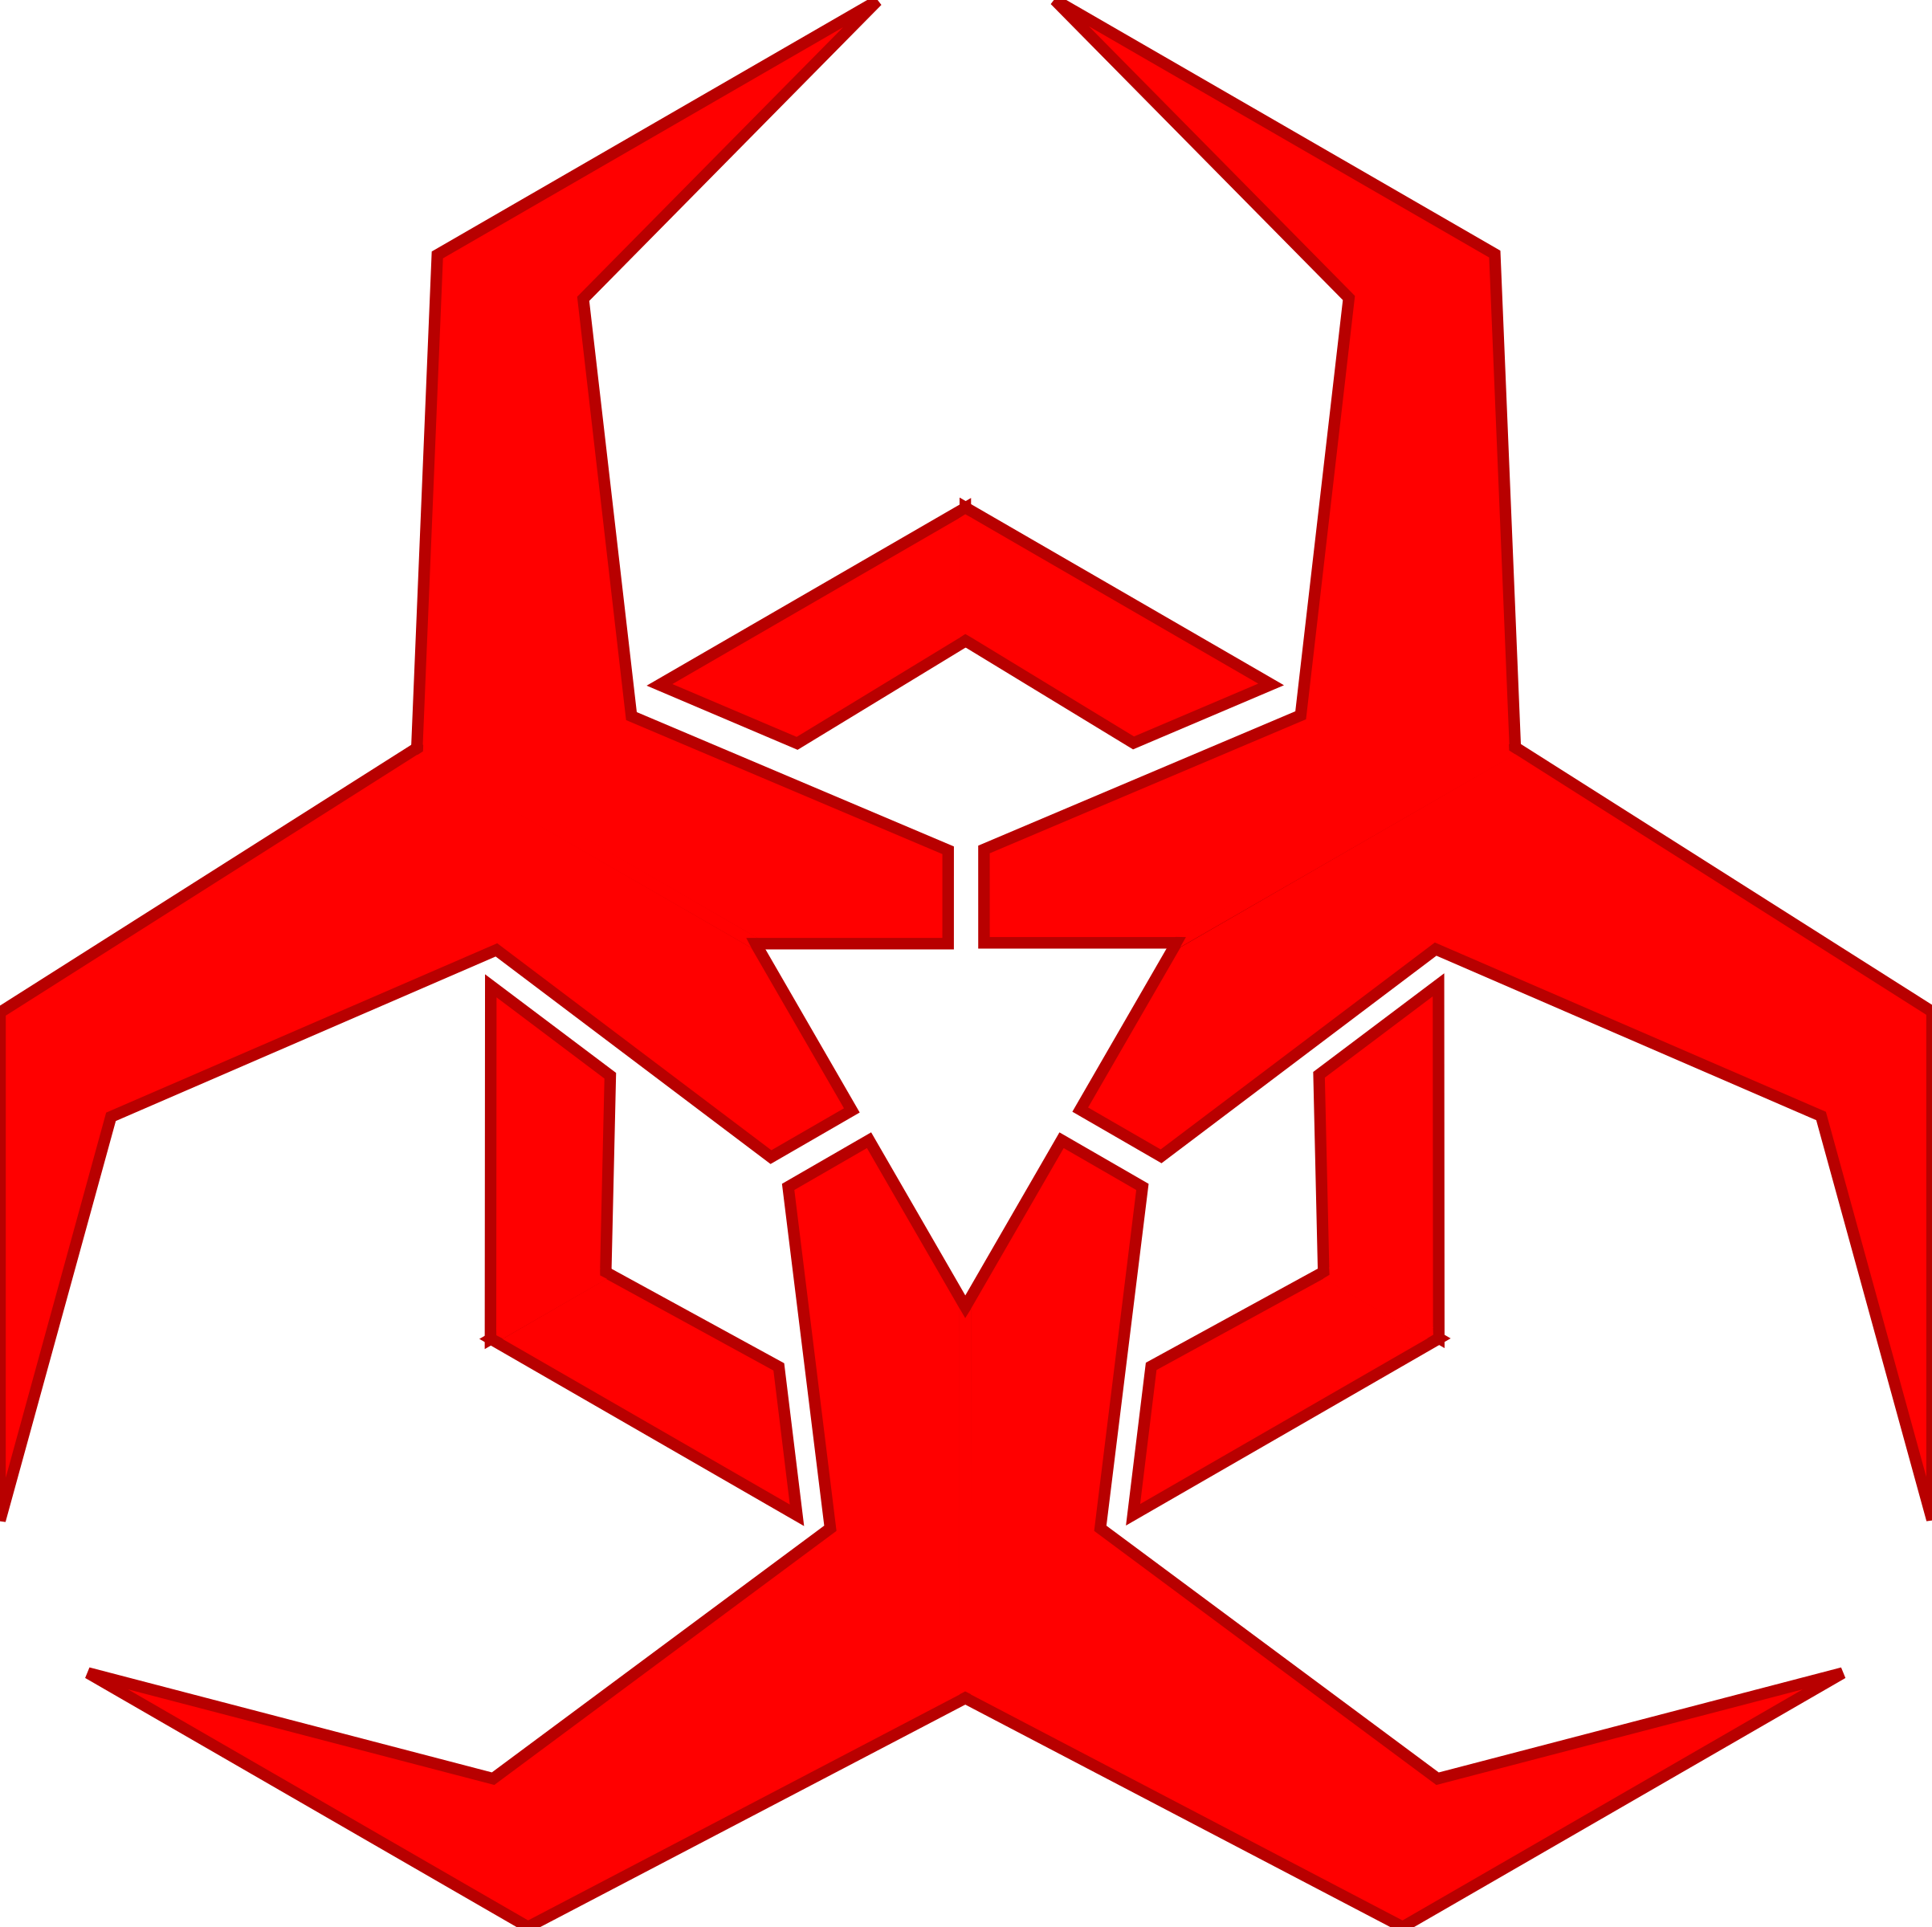 Malware hazard symbol by. Biohazard transparent red stock